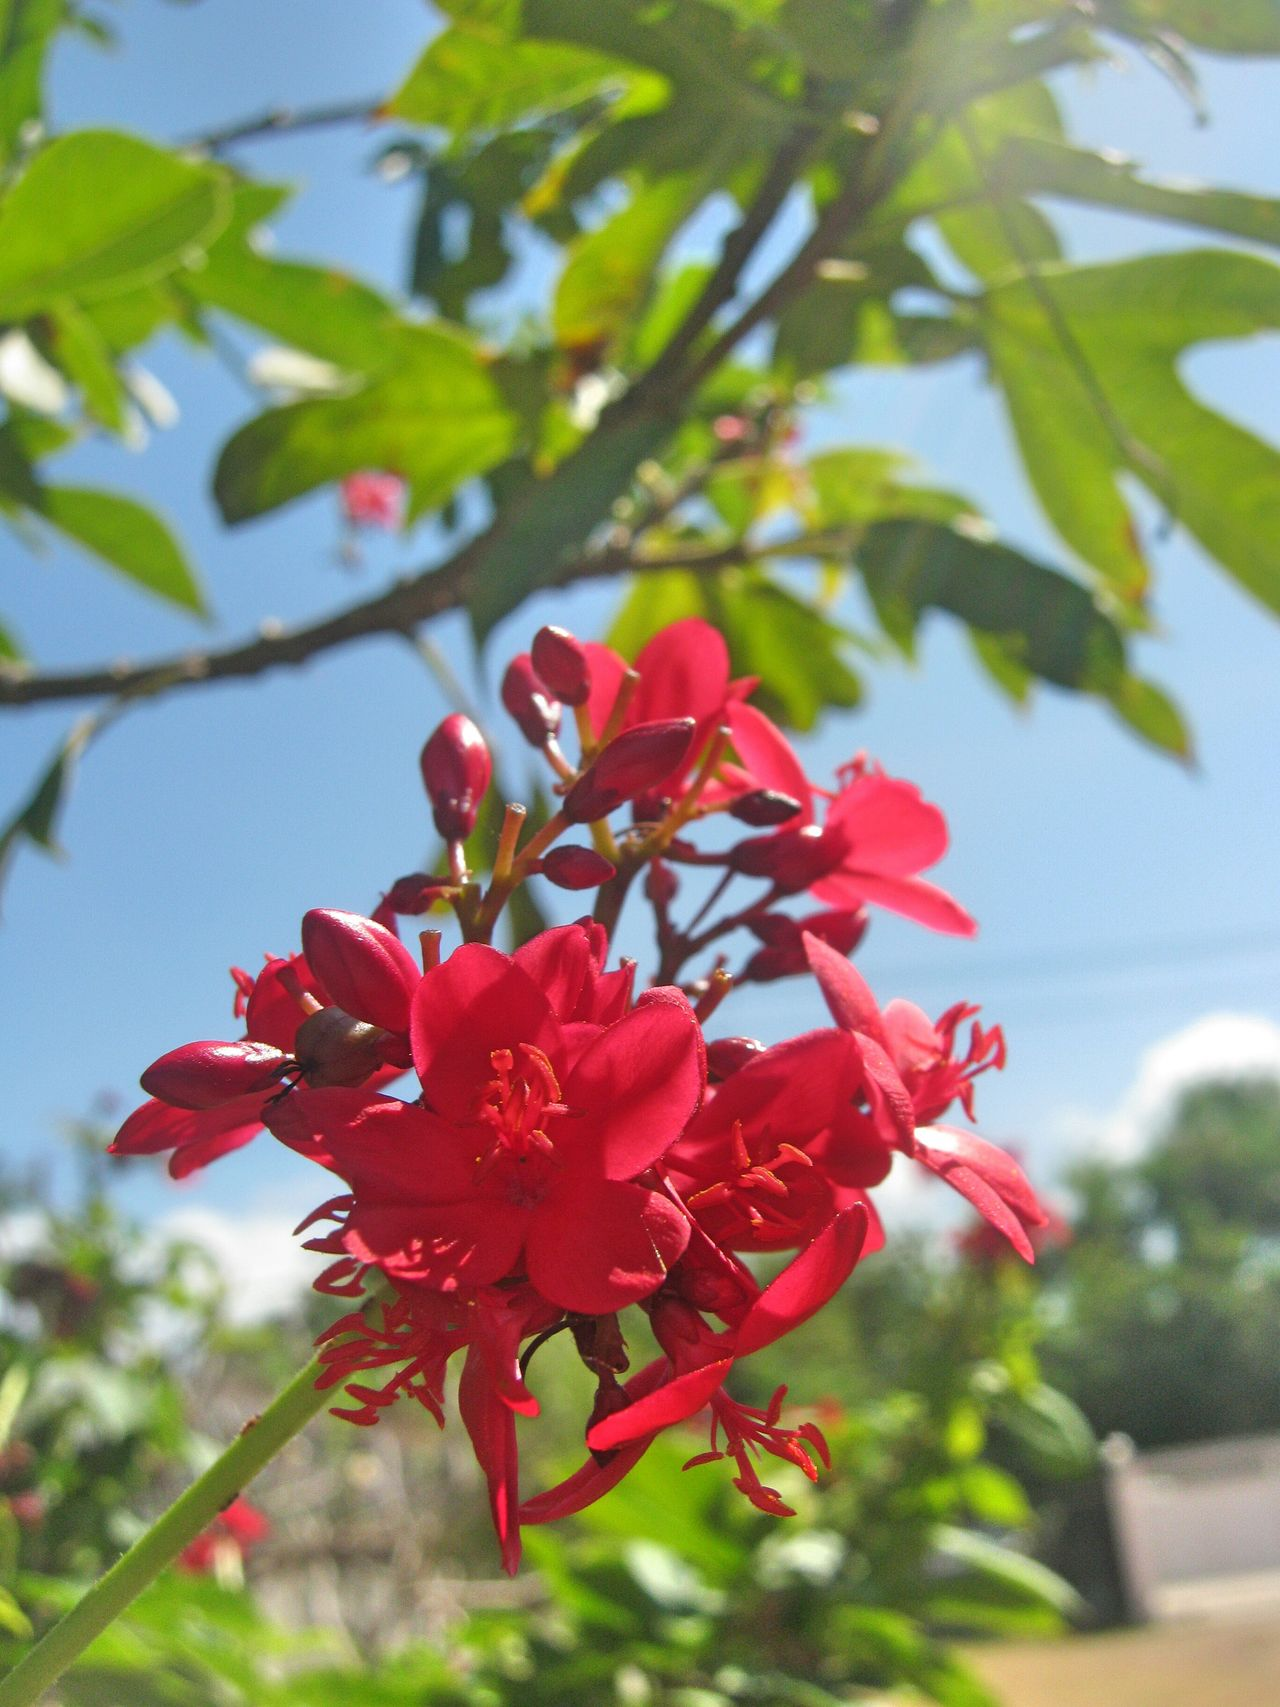 Red Nature Growth Flower Beauty In Nature Close-up Focus On Foreground Freshness Day Outdoors Fragility Green Color No People Flower Head Sky